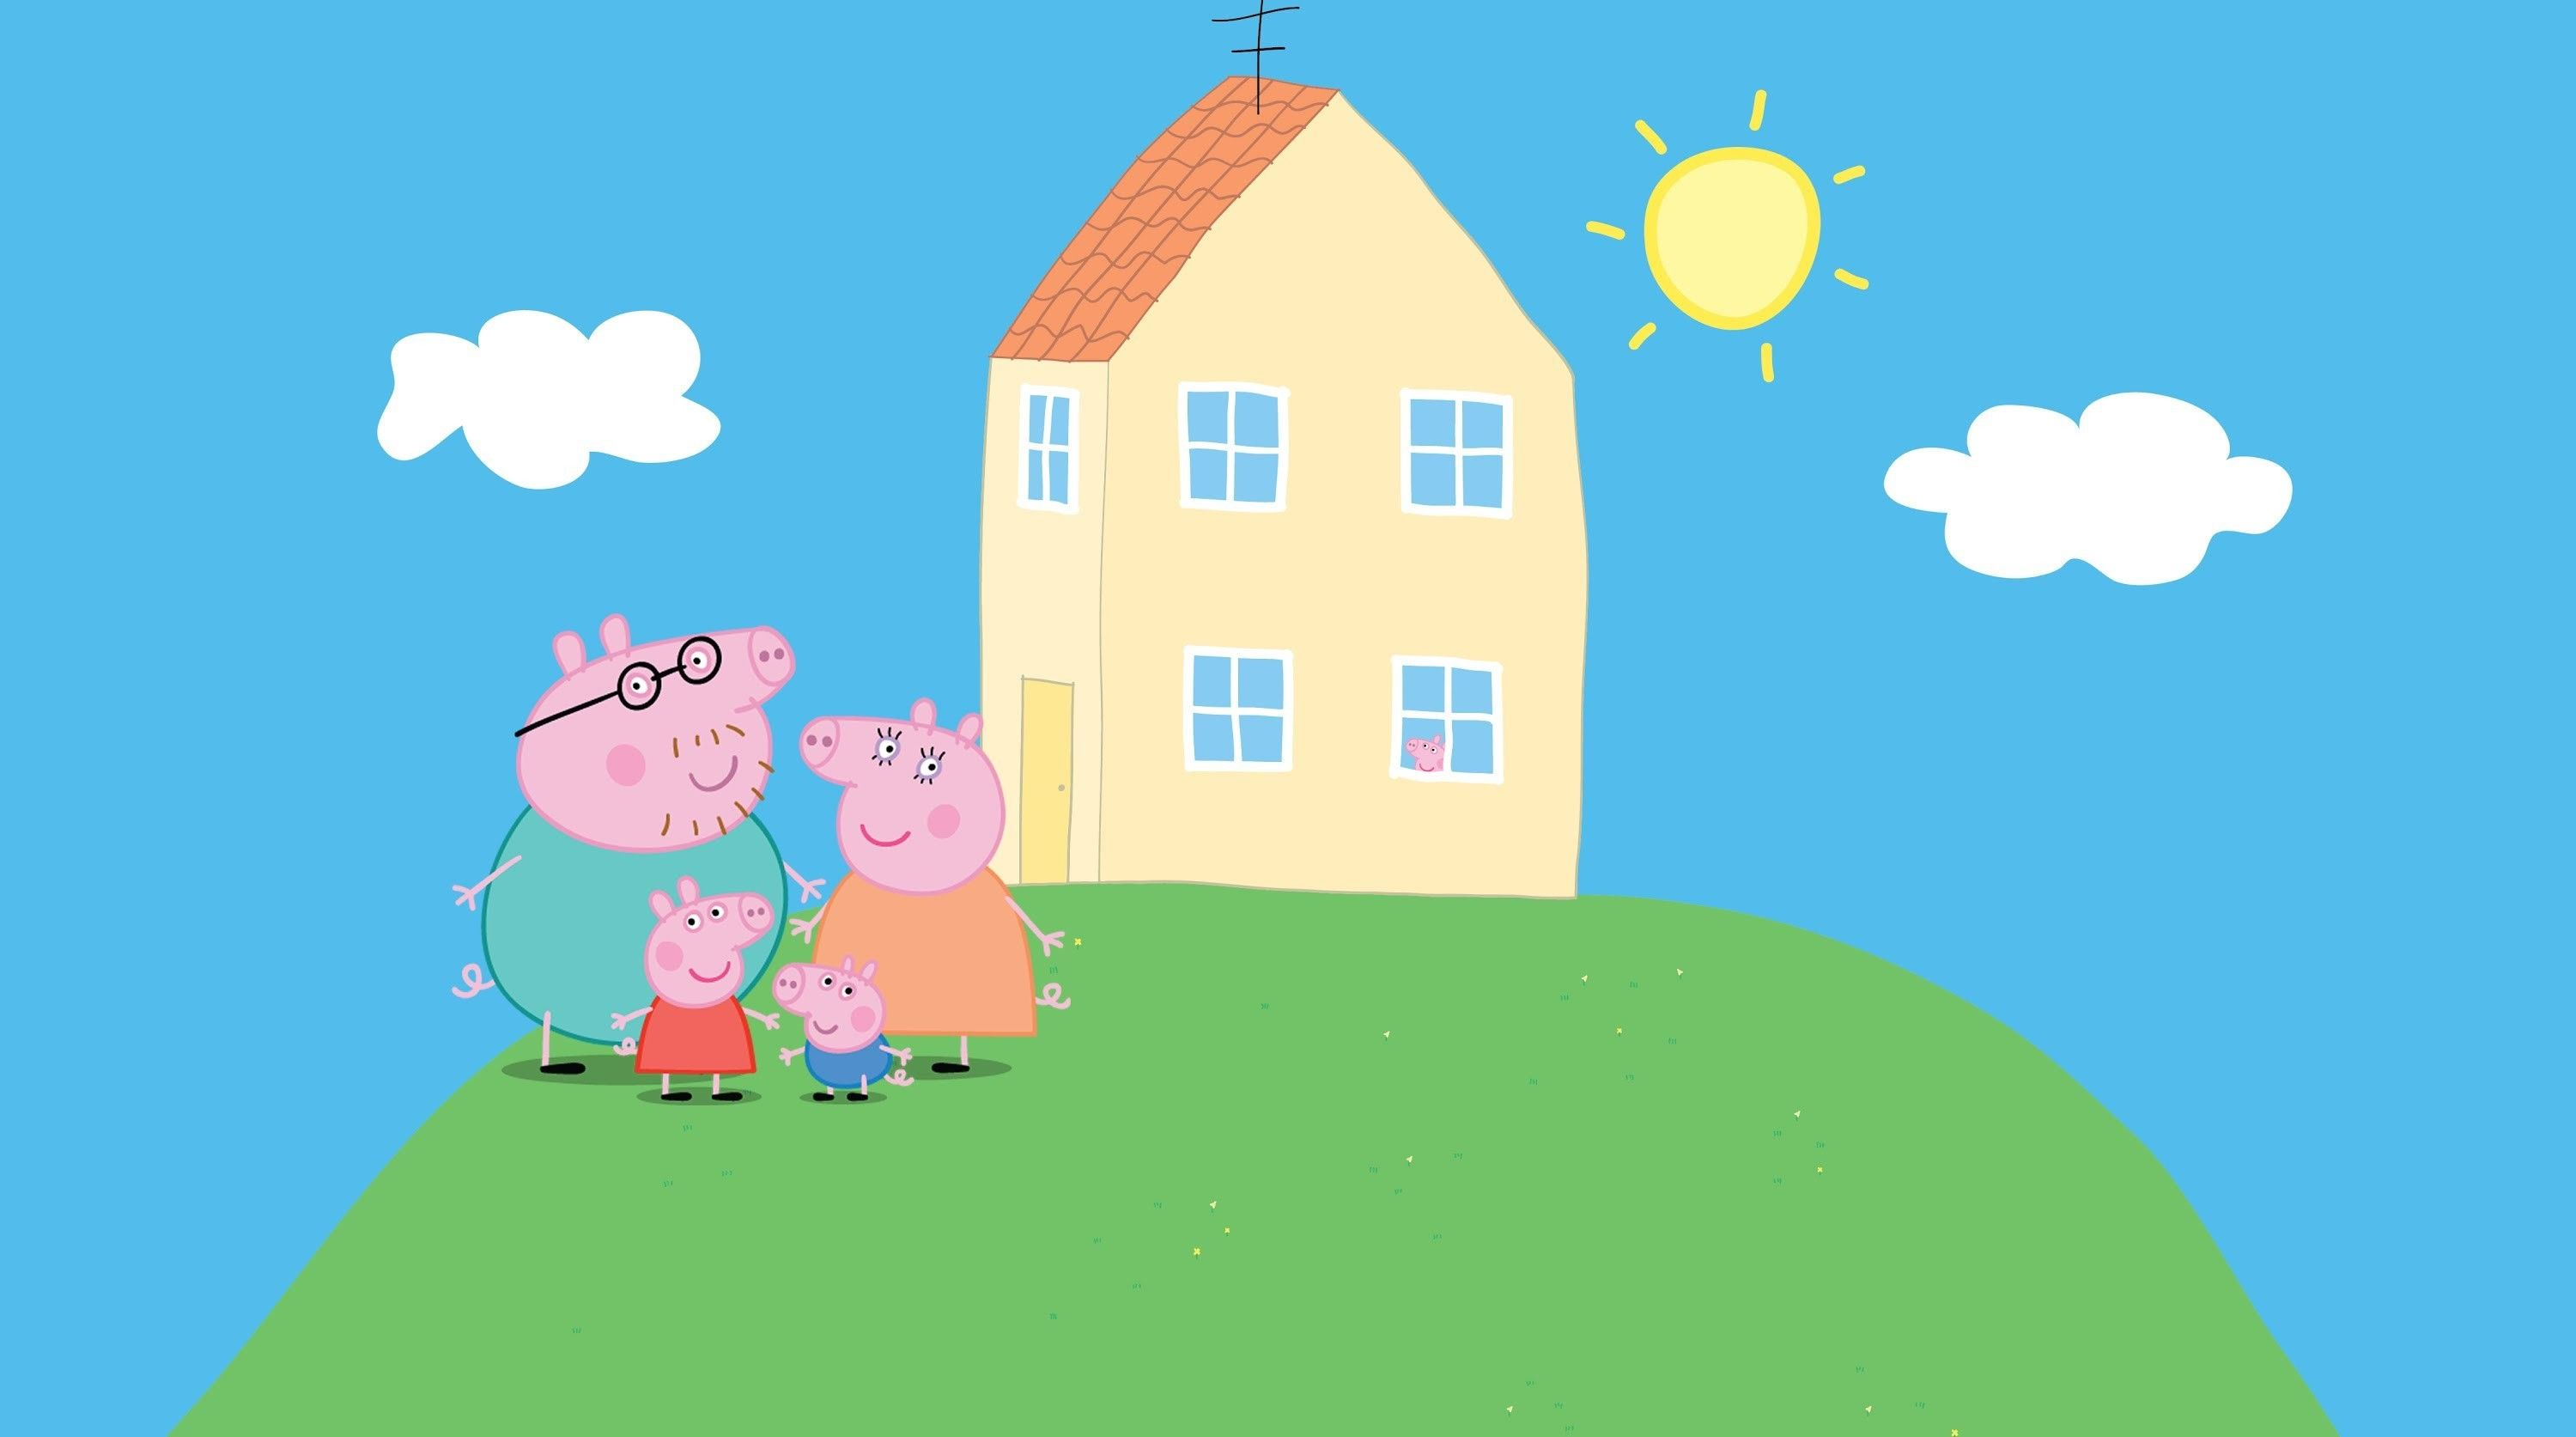 Peppa Pig HD Wallpaper 90 images Peppa pig house Peppa pig